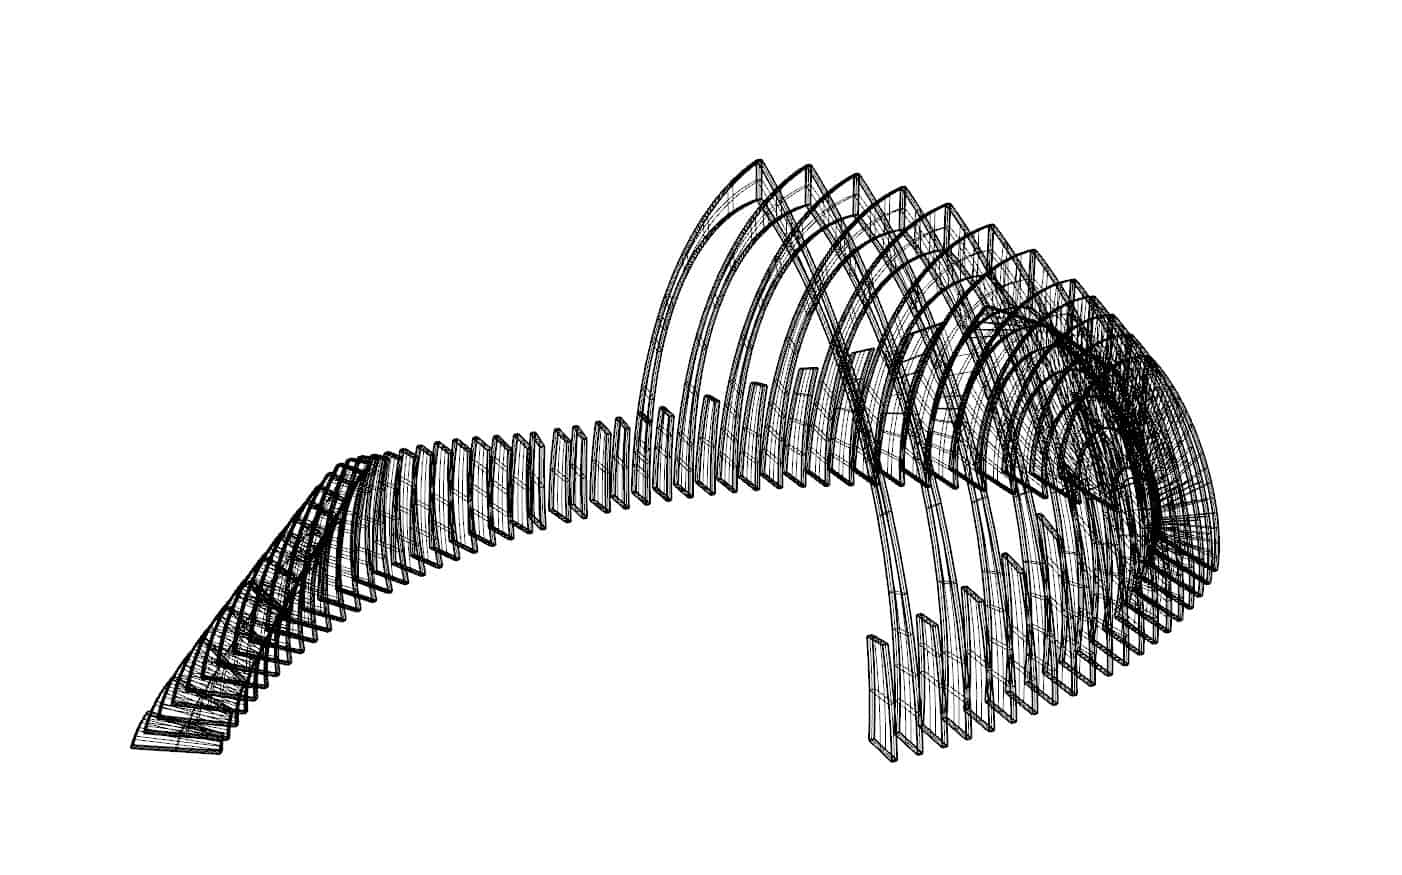 Black and white parametric scripting design